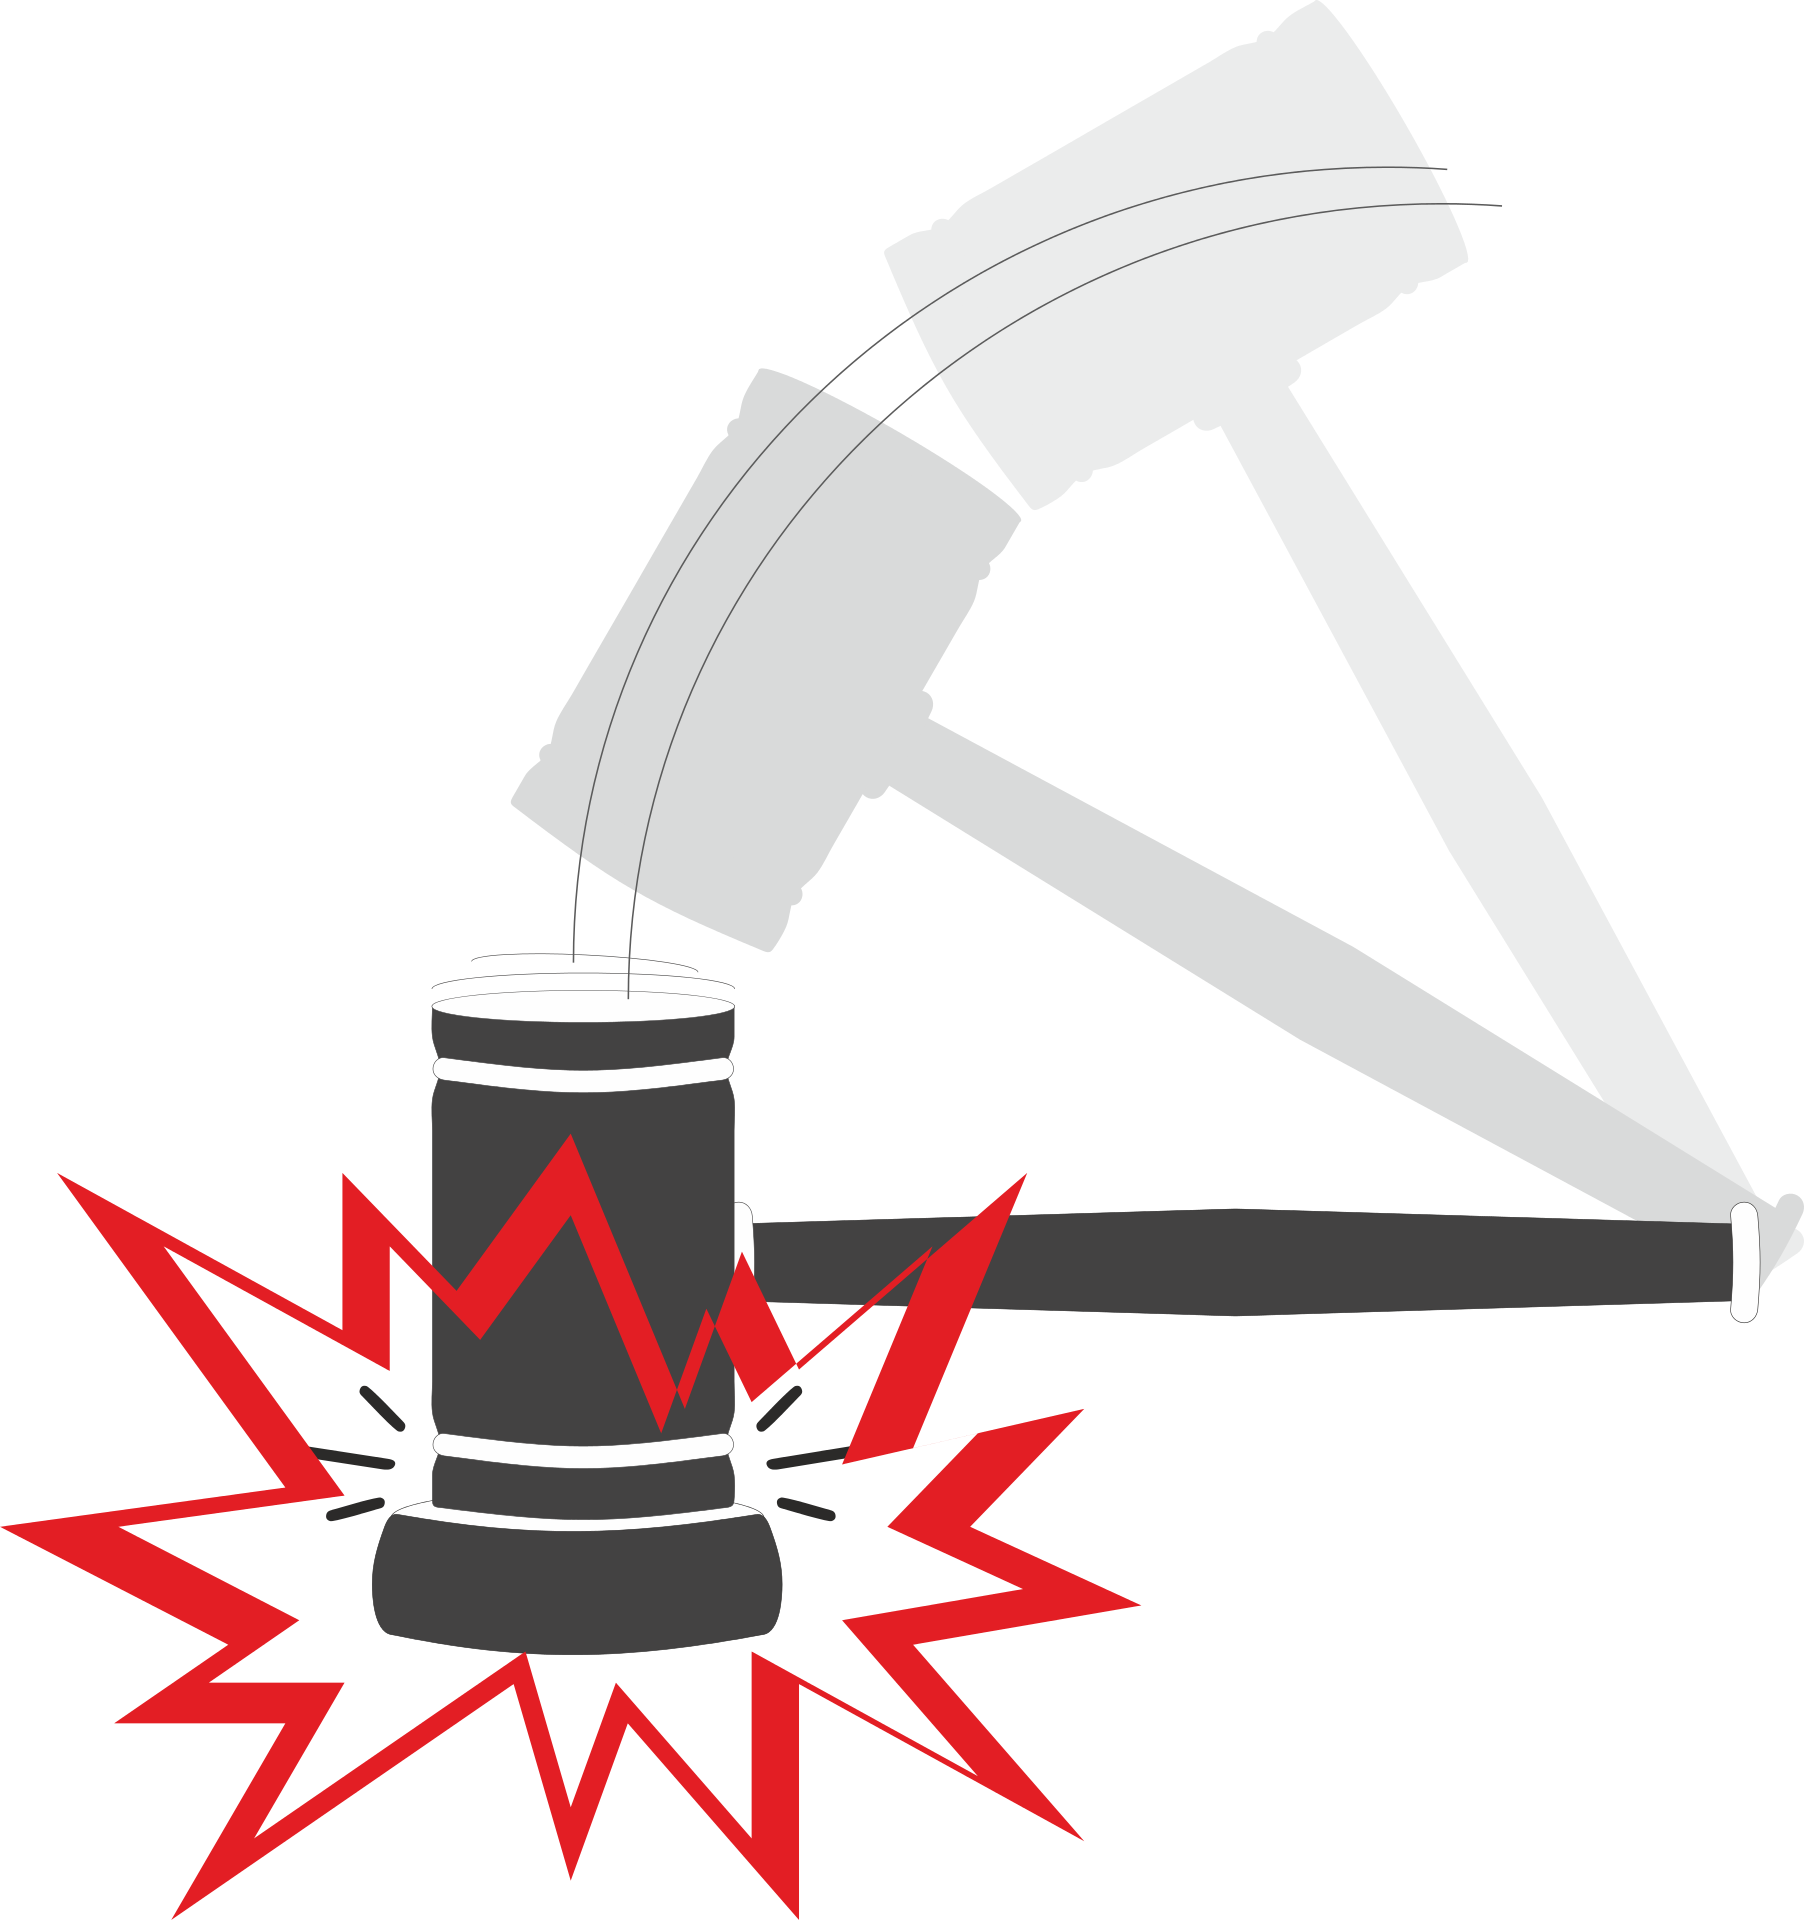 Clipart hammer lawyer. What is the biggest